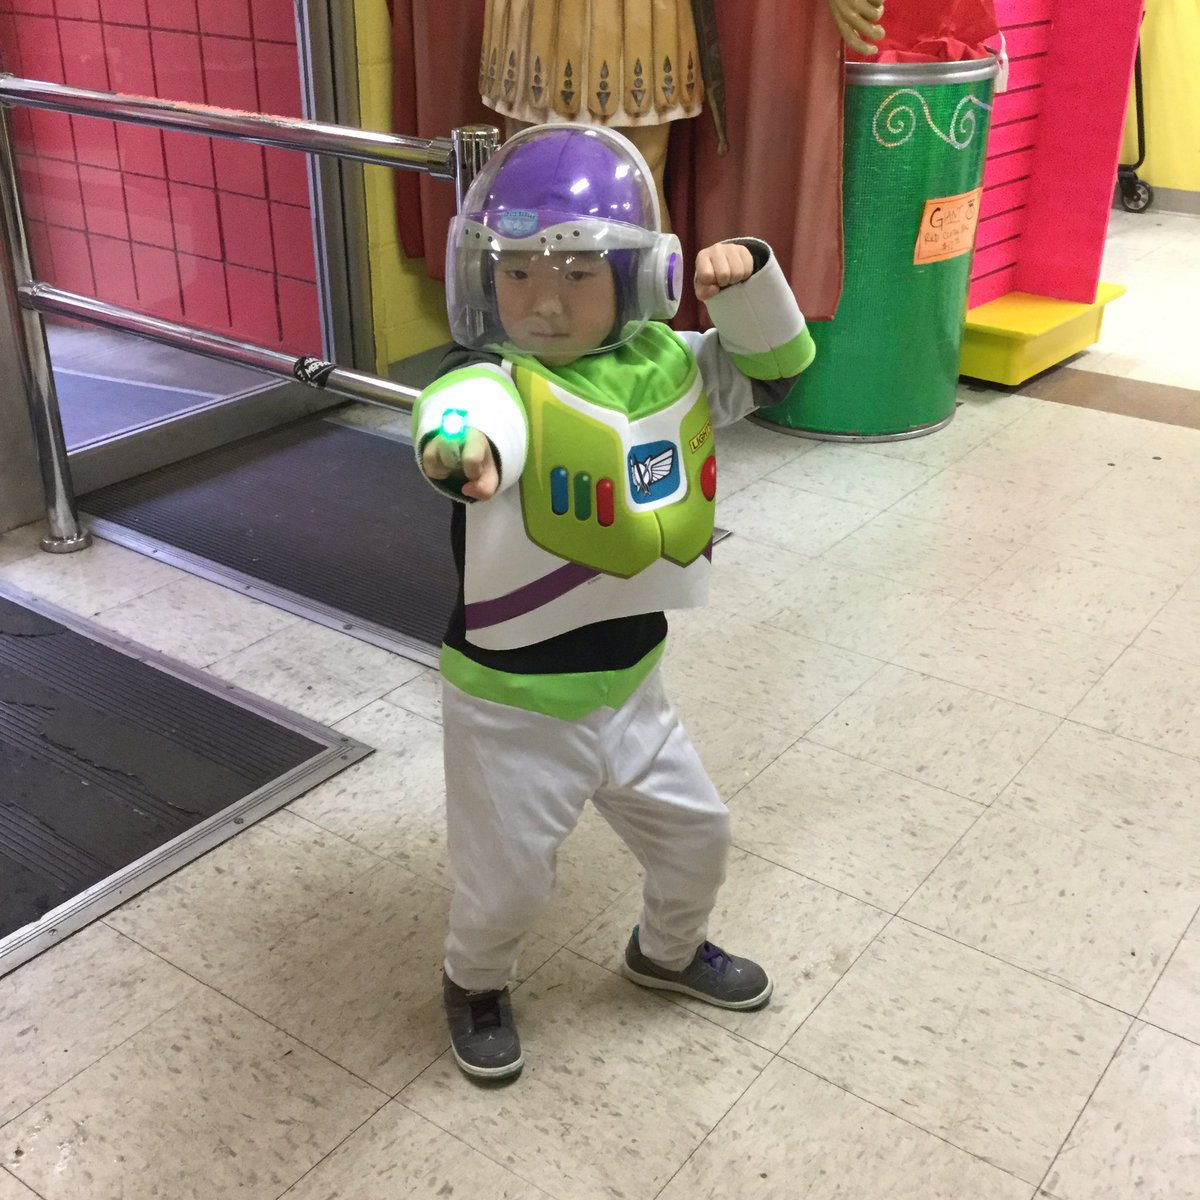 #buzzlightyear came in for more light up #partyrats! #weloveourcustomers #seattle<br>http://pic.twitter.com/9gndF0ZZ0o